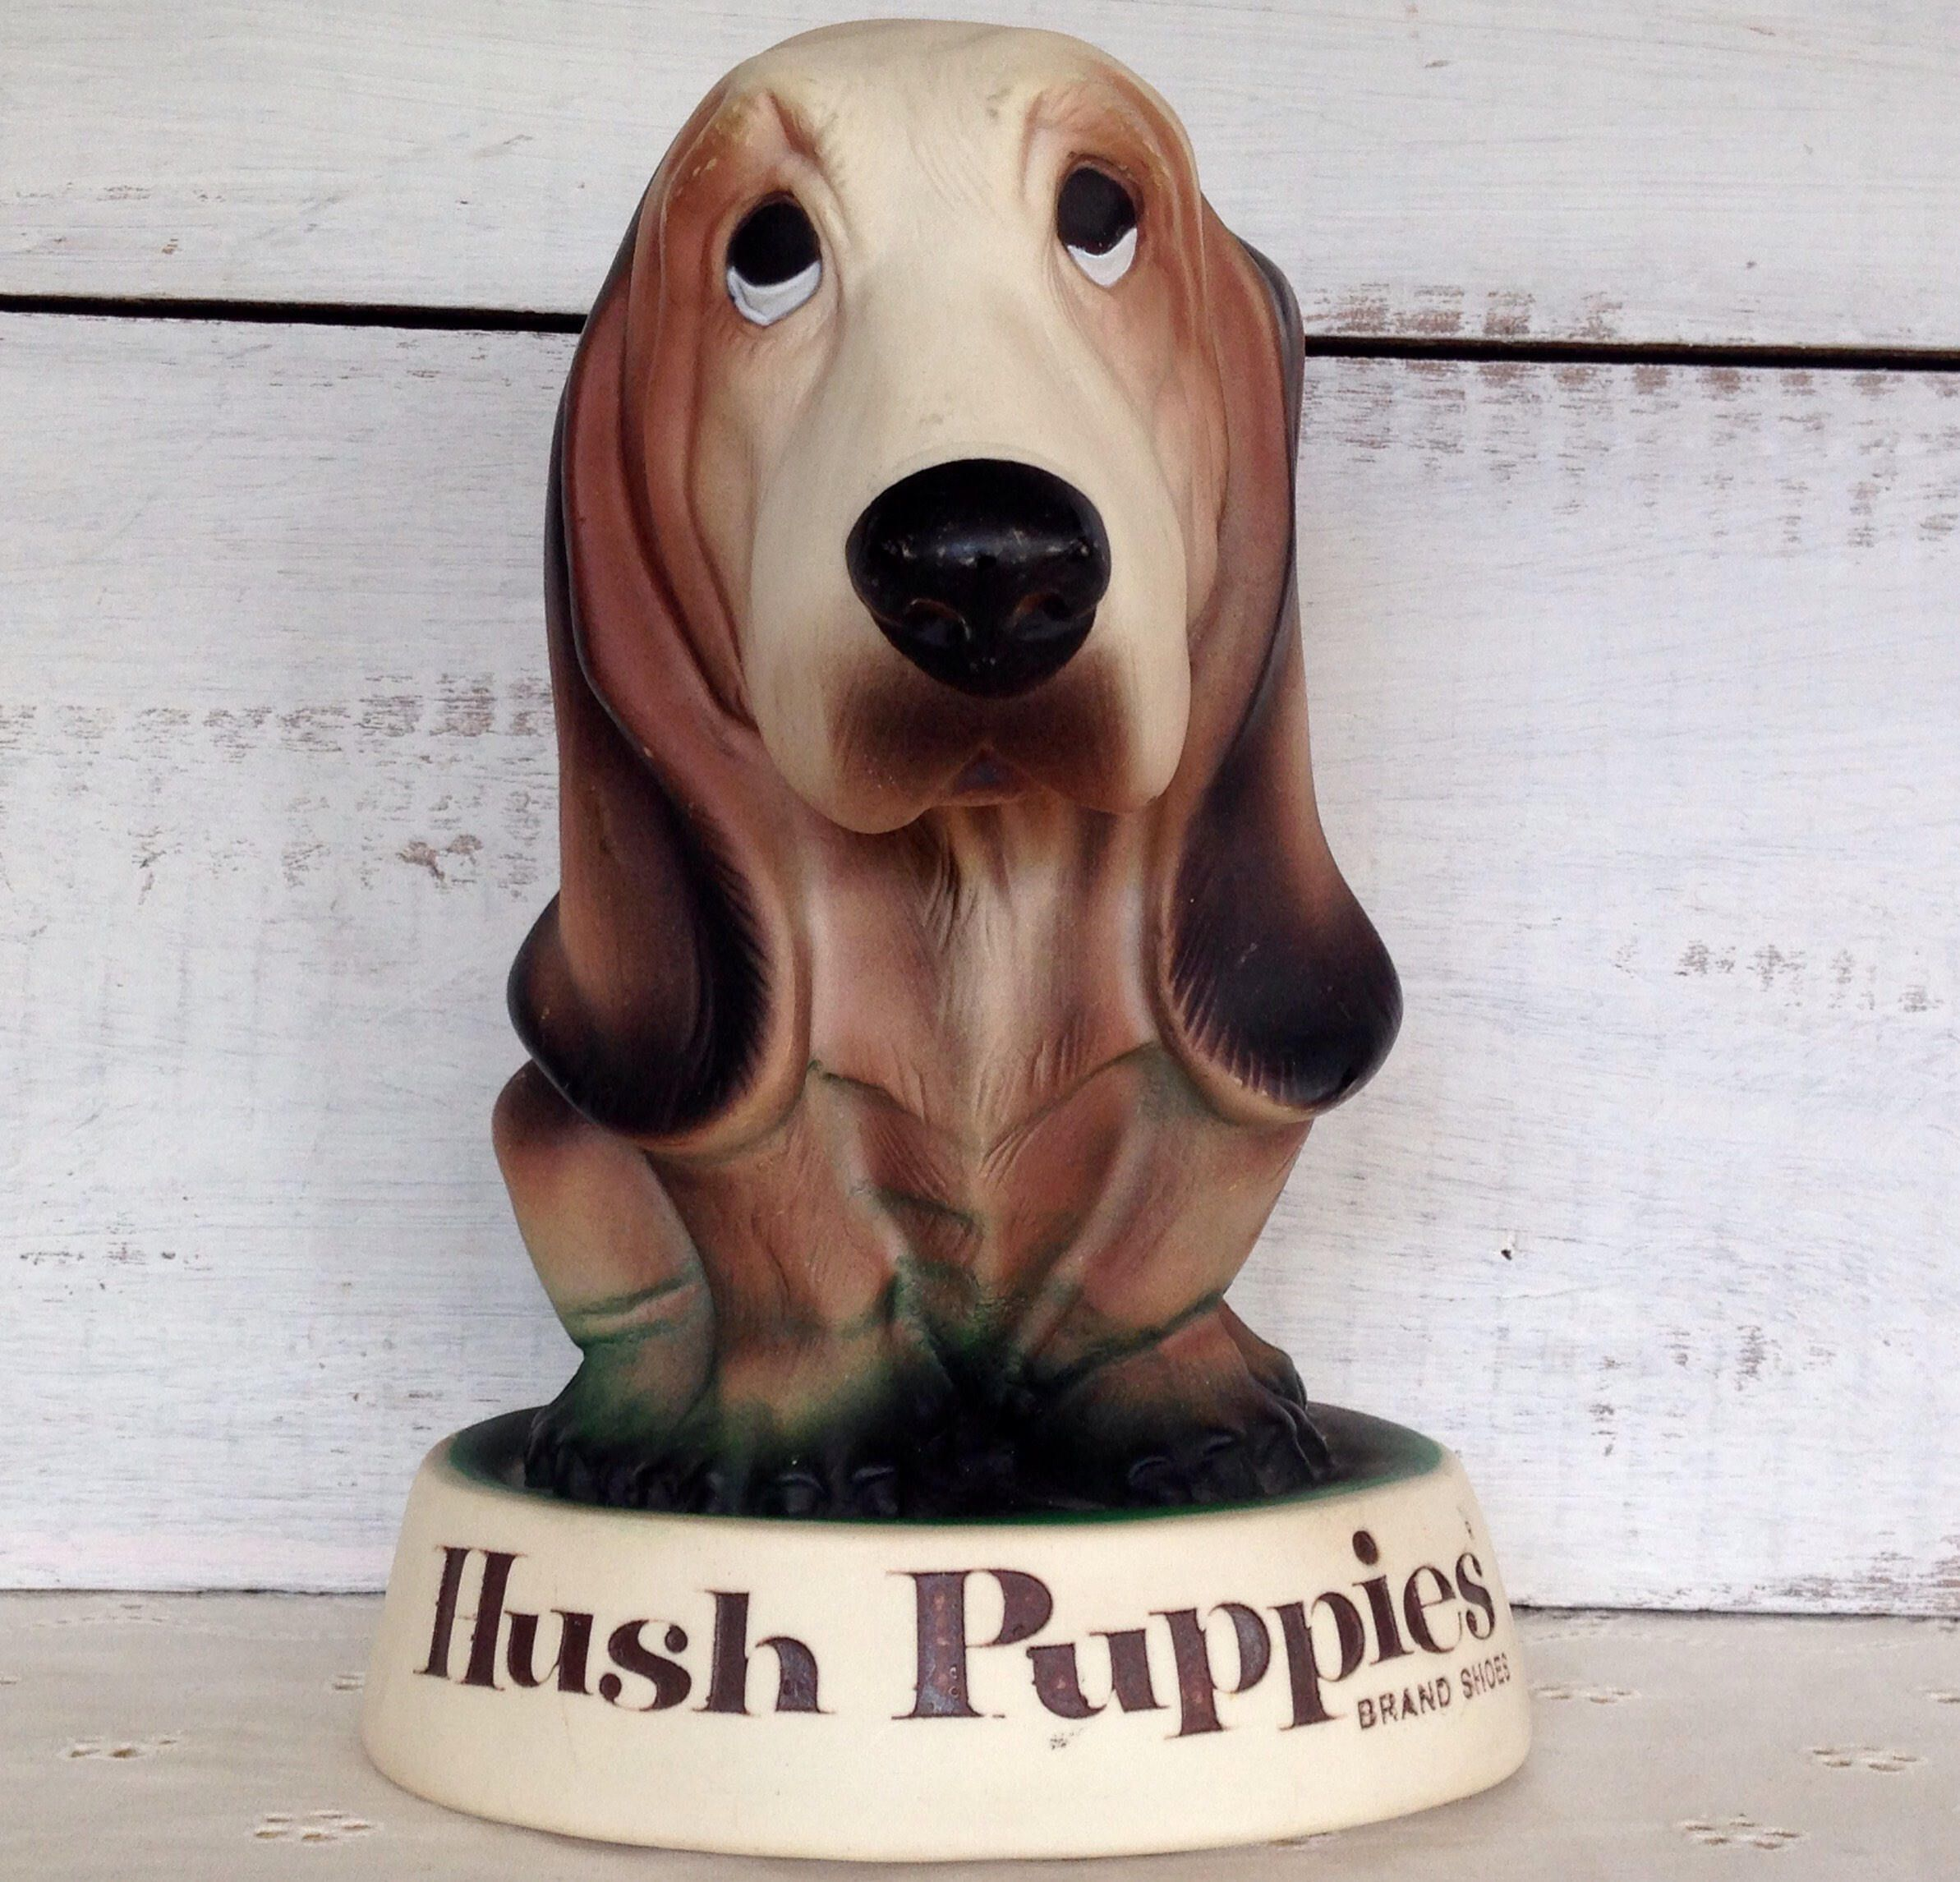 Vintage Hush Puppy Store Display Piece From My Etsy Shop Https